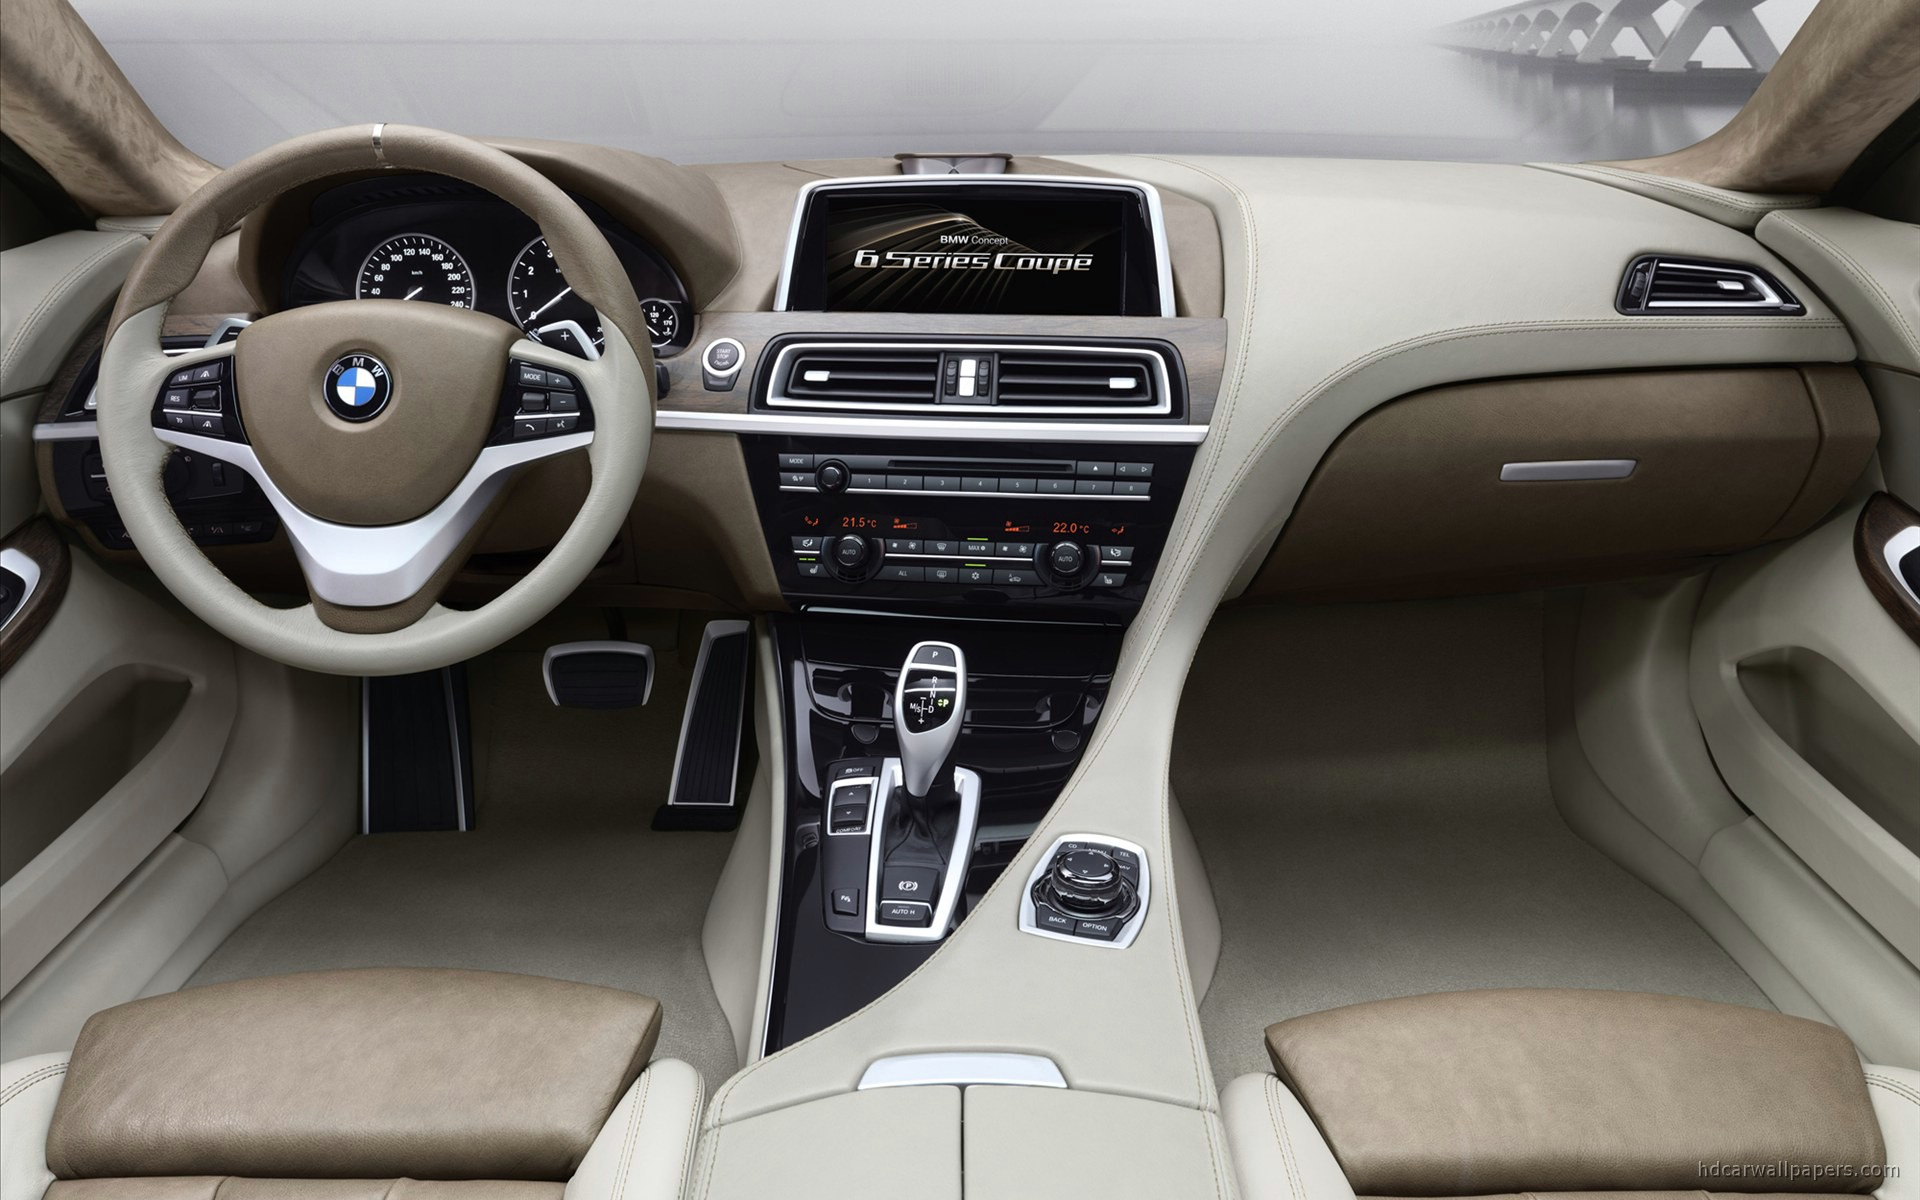 2010 Bmw 6 Series Concept Interior Wallpaper Hd Car Wallpapers Id 1653